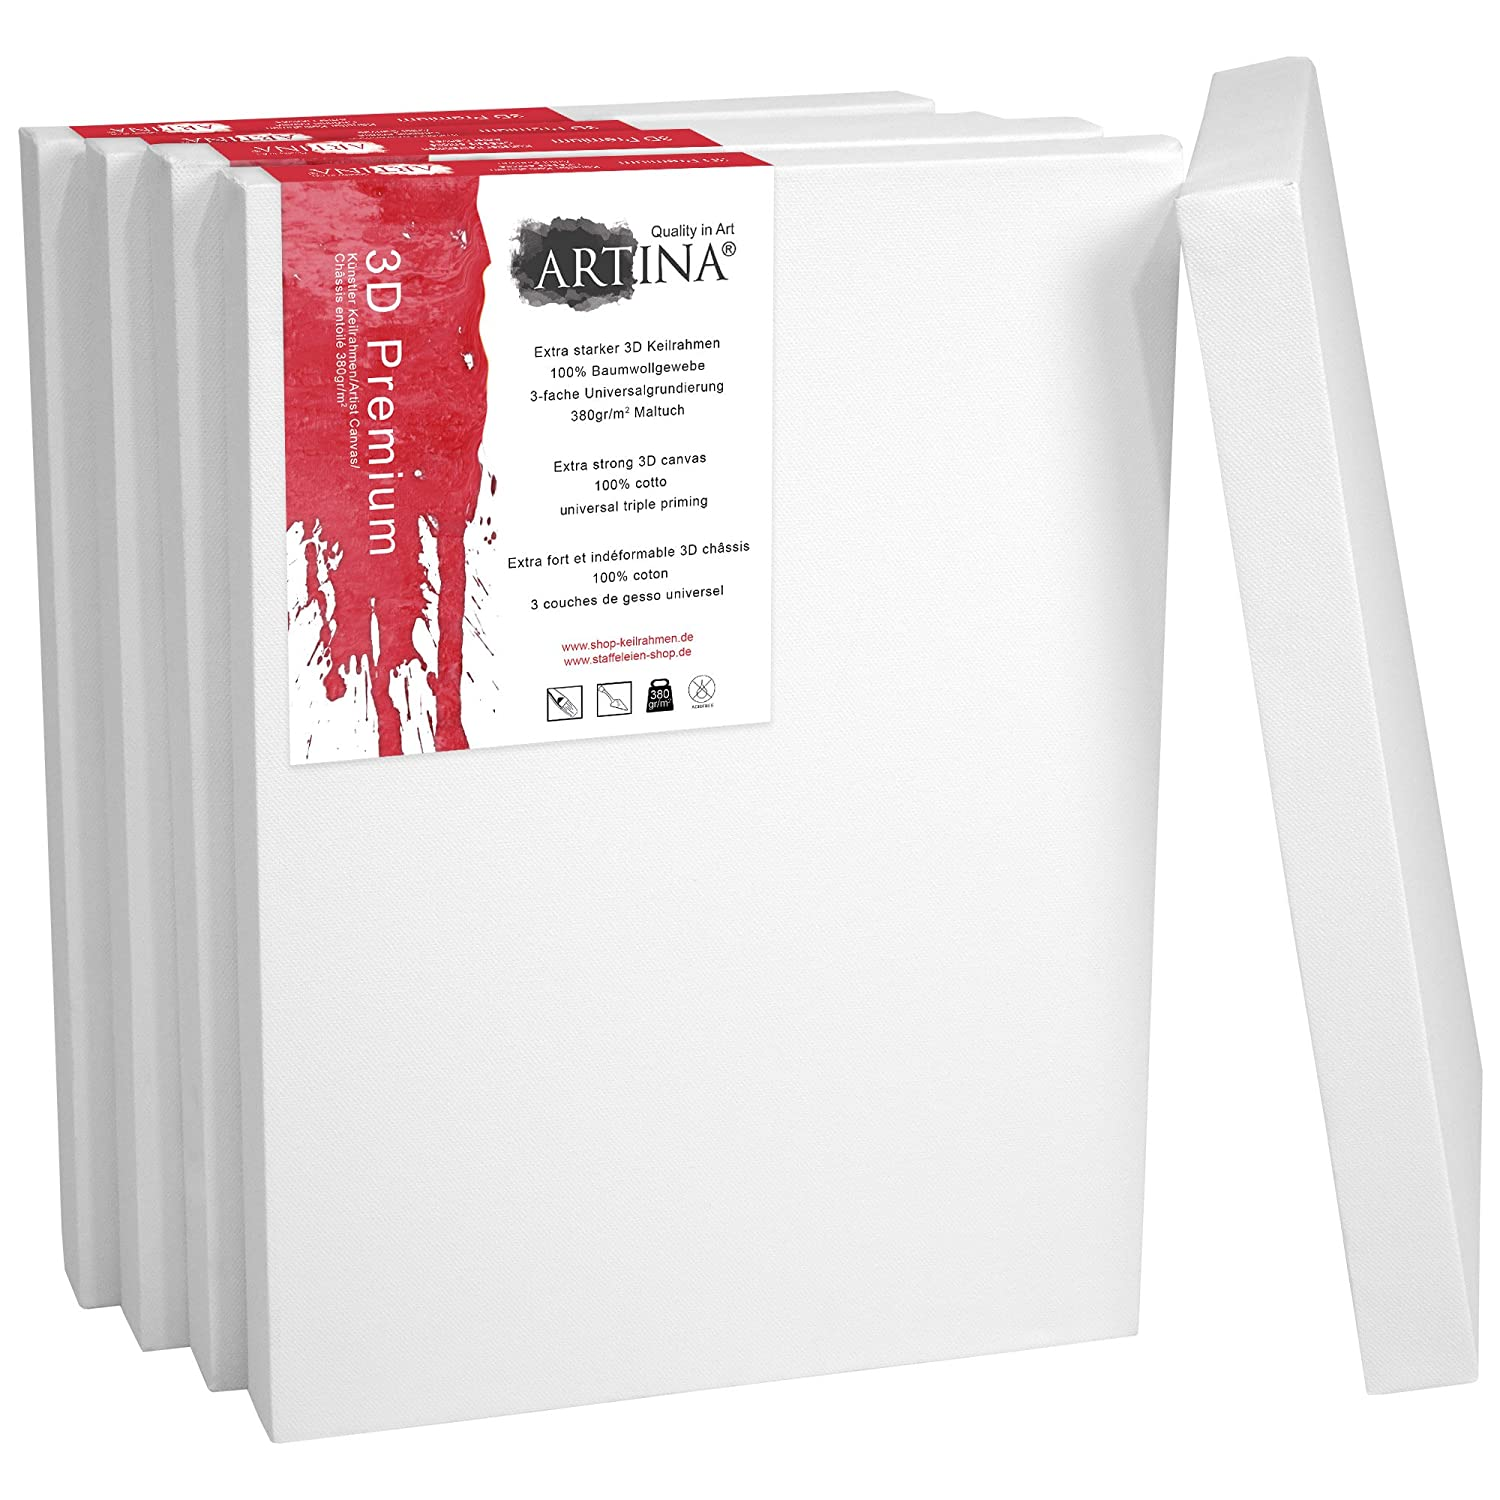 Artina 5 Deep Edge Canvases 50 x 50 cm Premium Quality Blank Art Canvas Bulk Stretched & Triple Primed 20 x 20 Inch